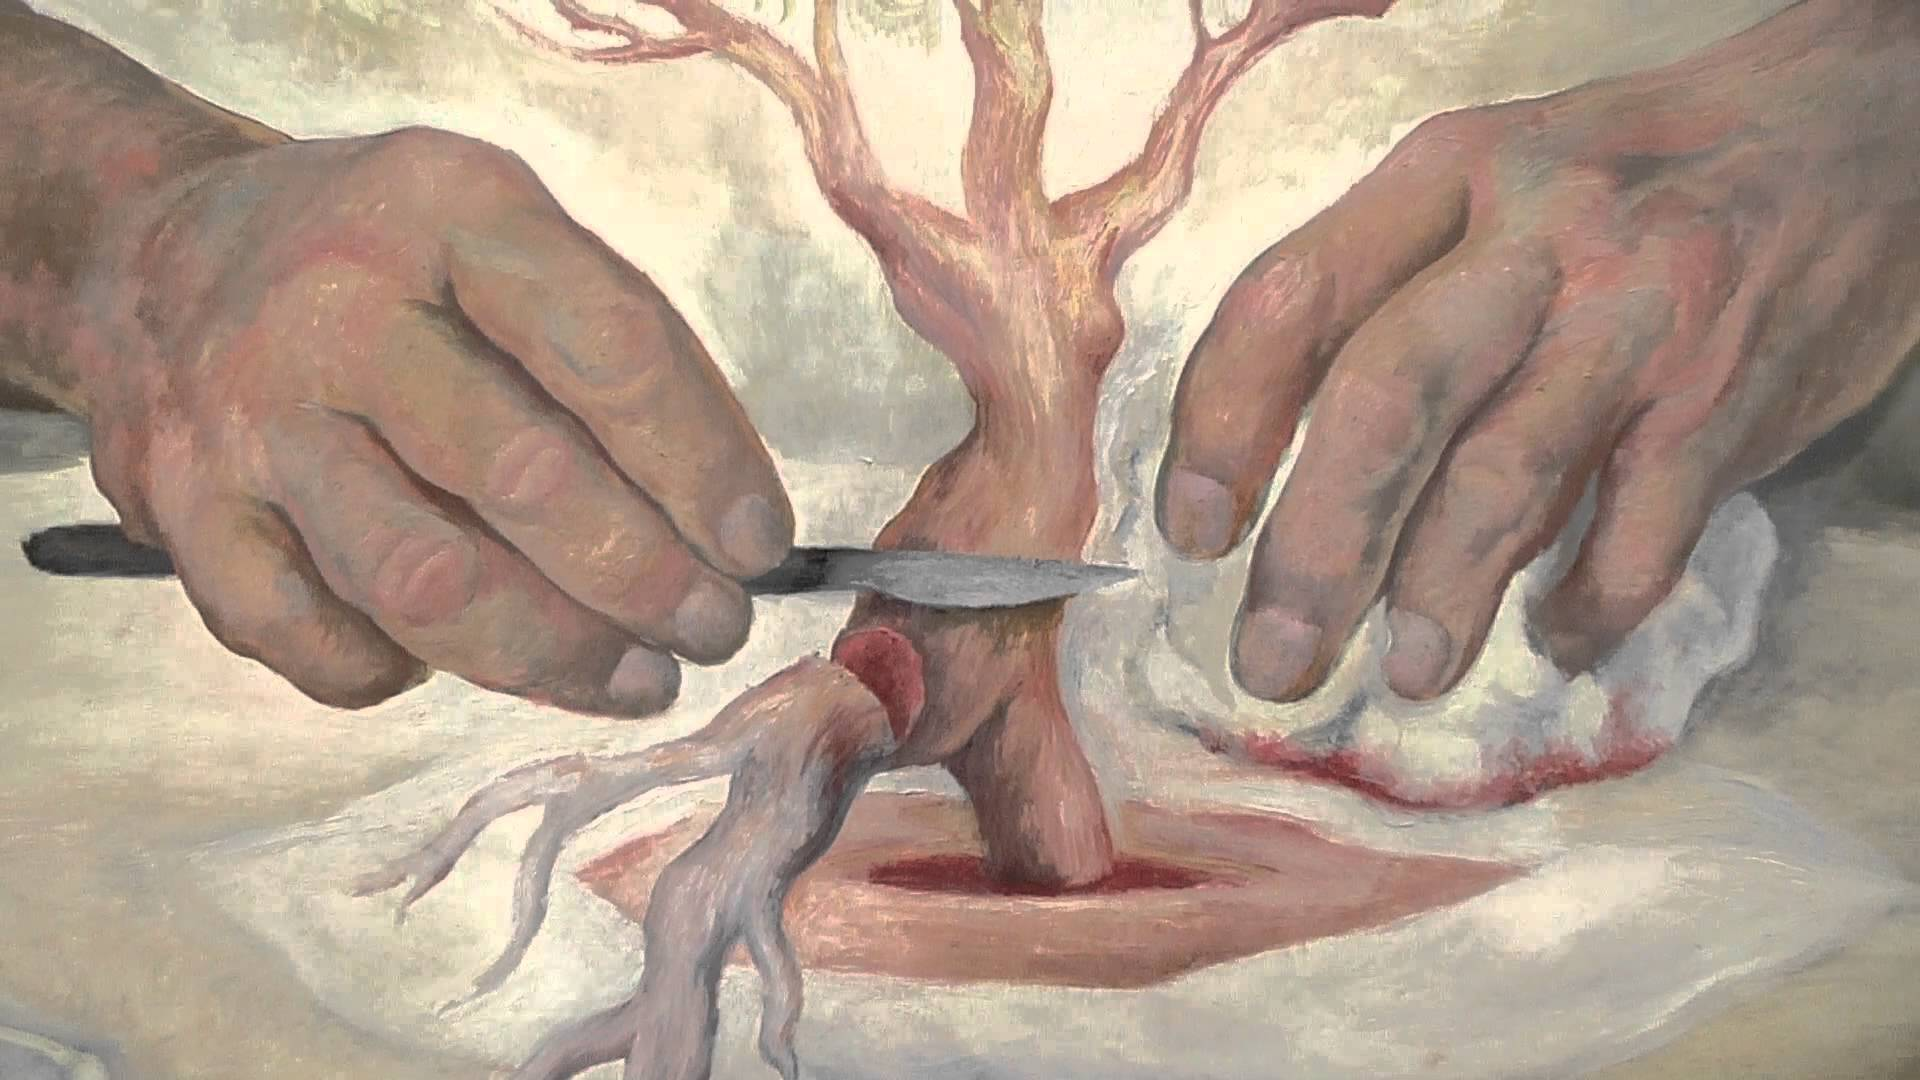 The Hands of Dr. Moore (rivera)